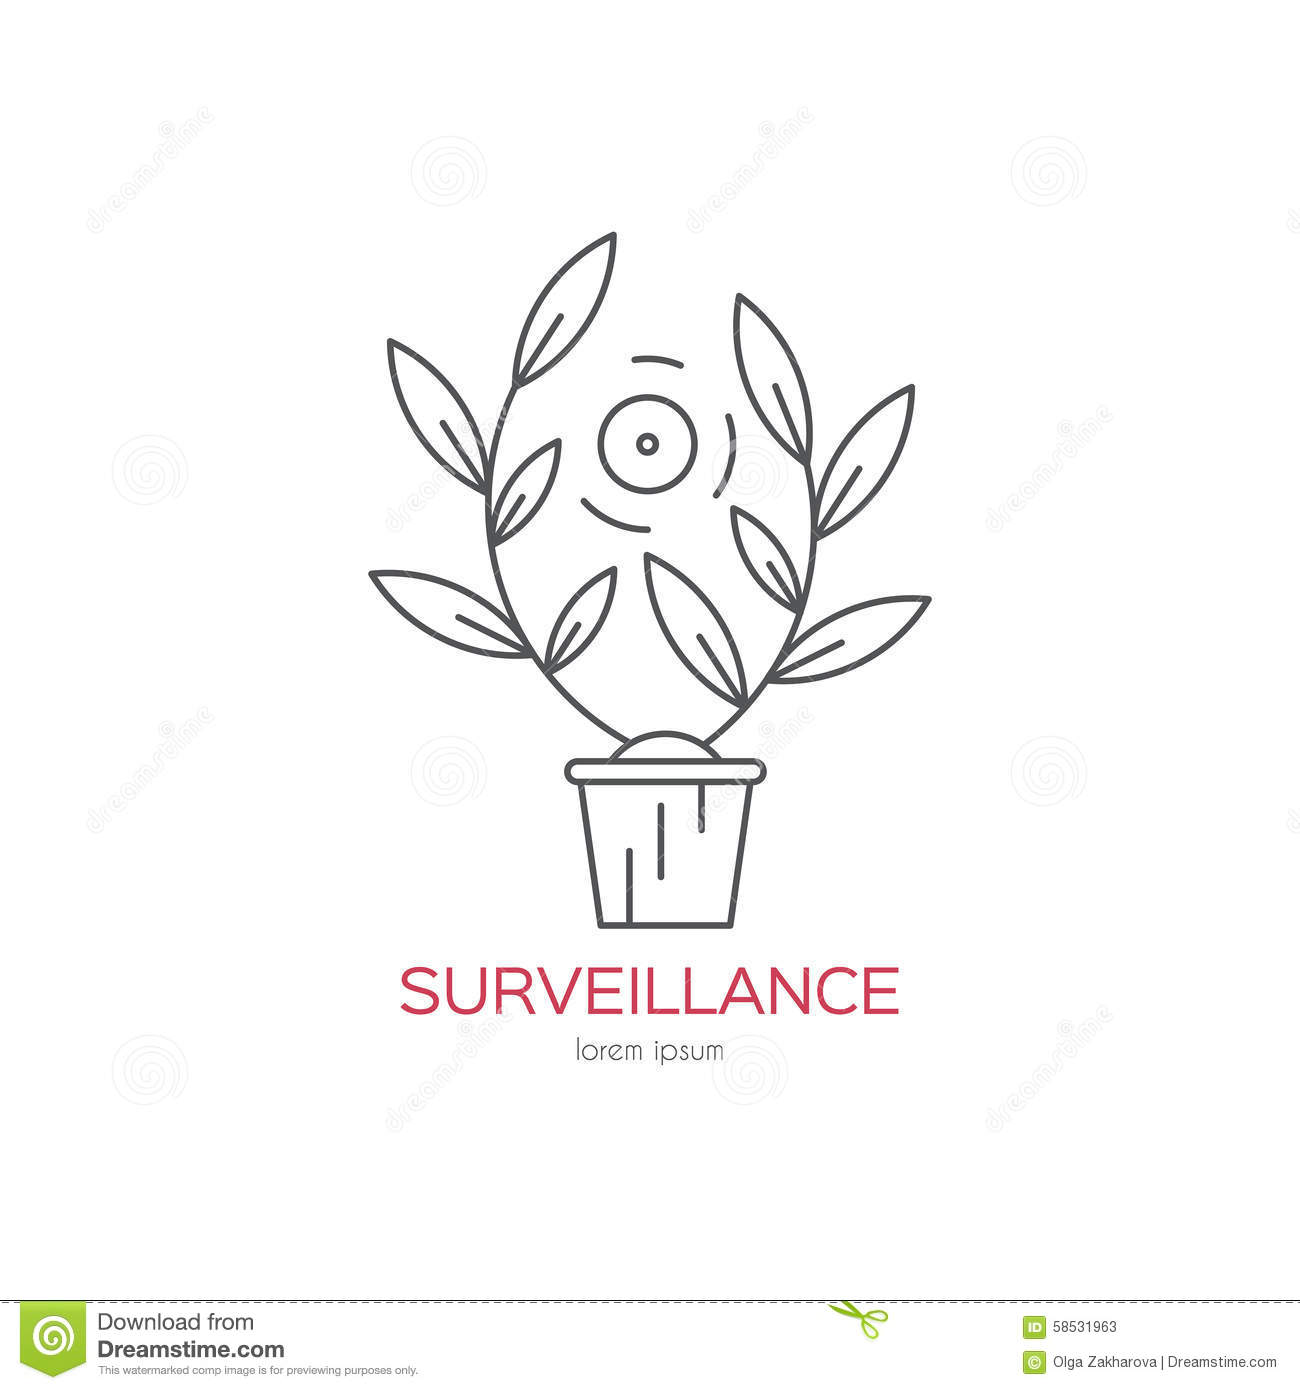 Hidden Camera stock image. Image of graphic, sign, system